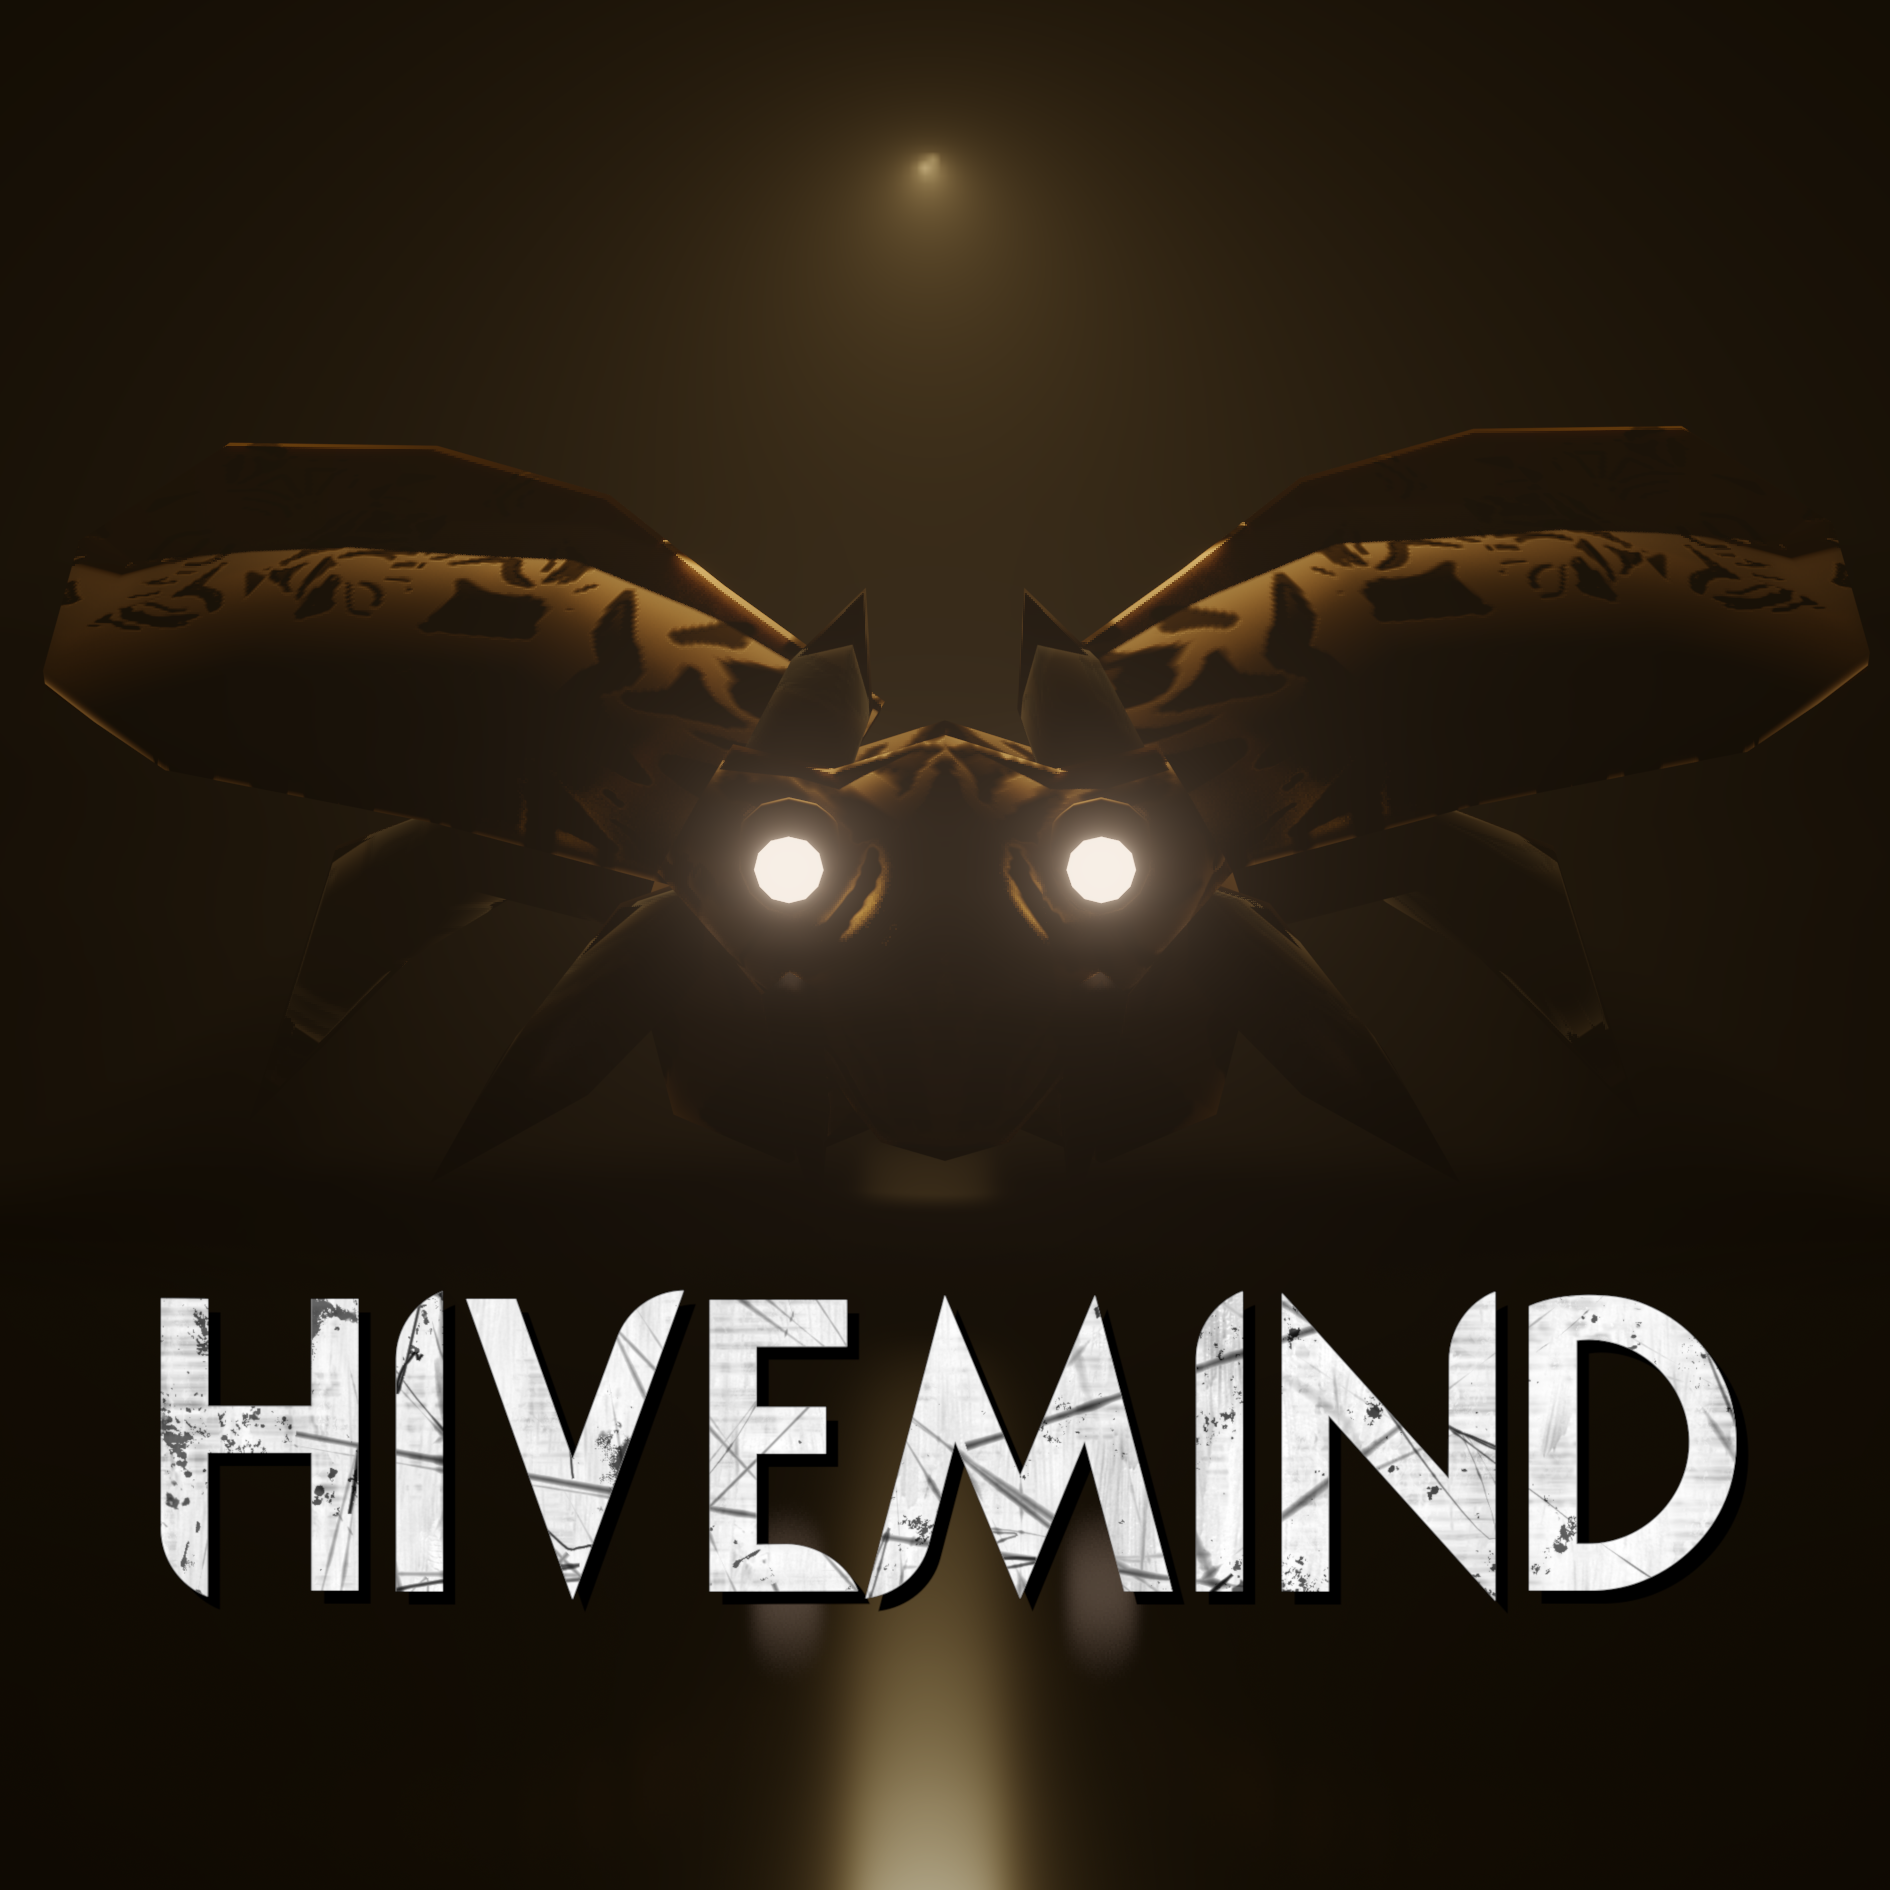 Hivemind by JohnGabrielUK